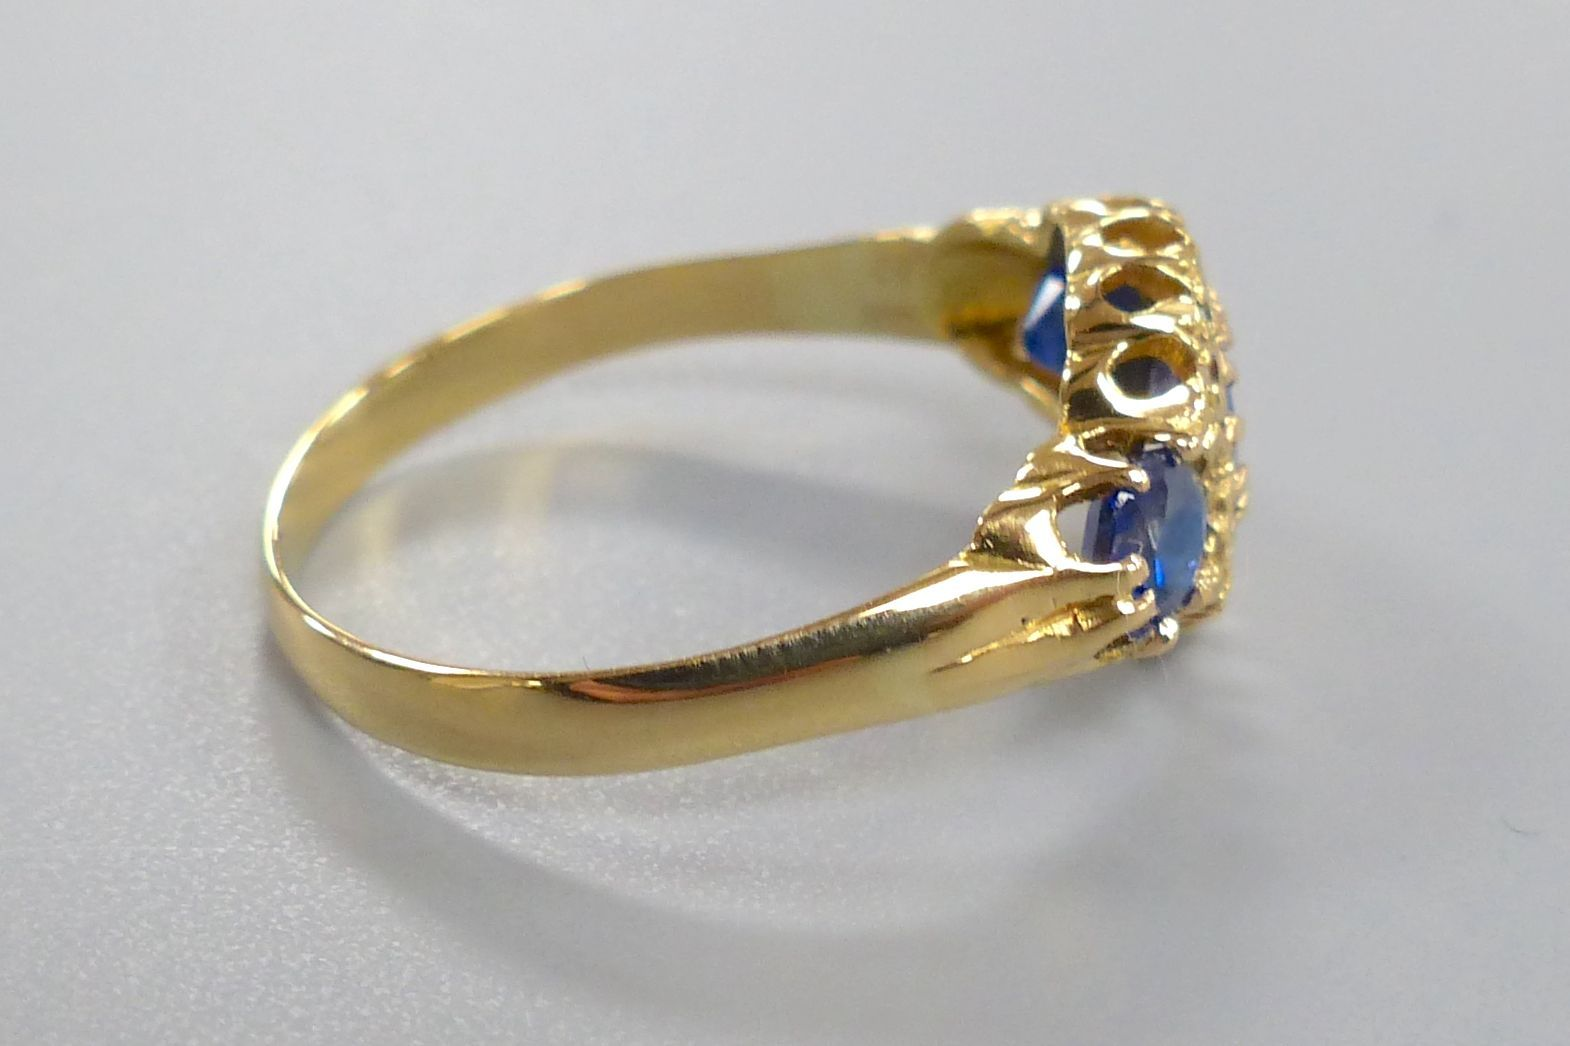 A George V 18ct gold, sapphire and diamond chip cluster dress ring, size R/S, gross 2.7 grams. - Image 2 of 3